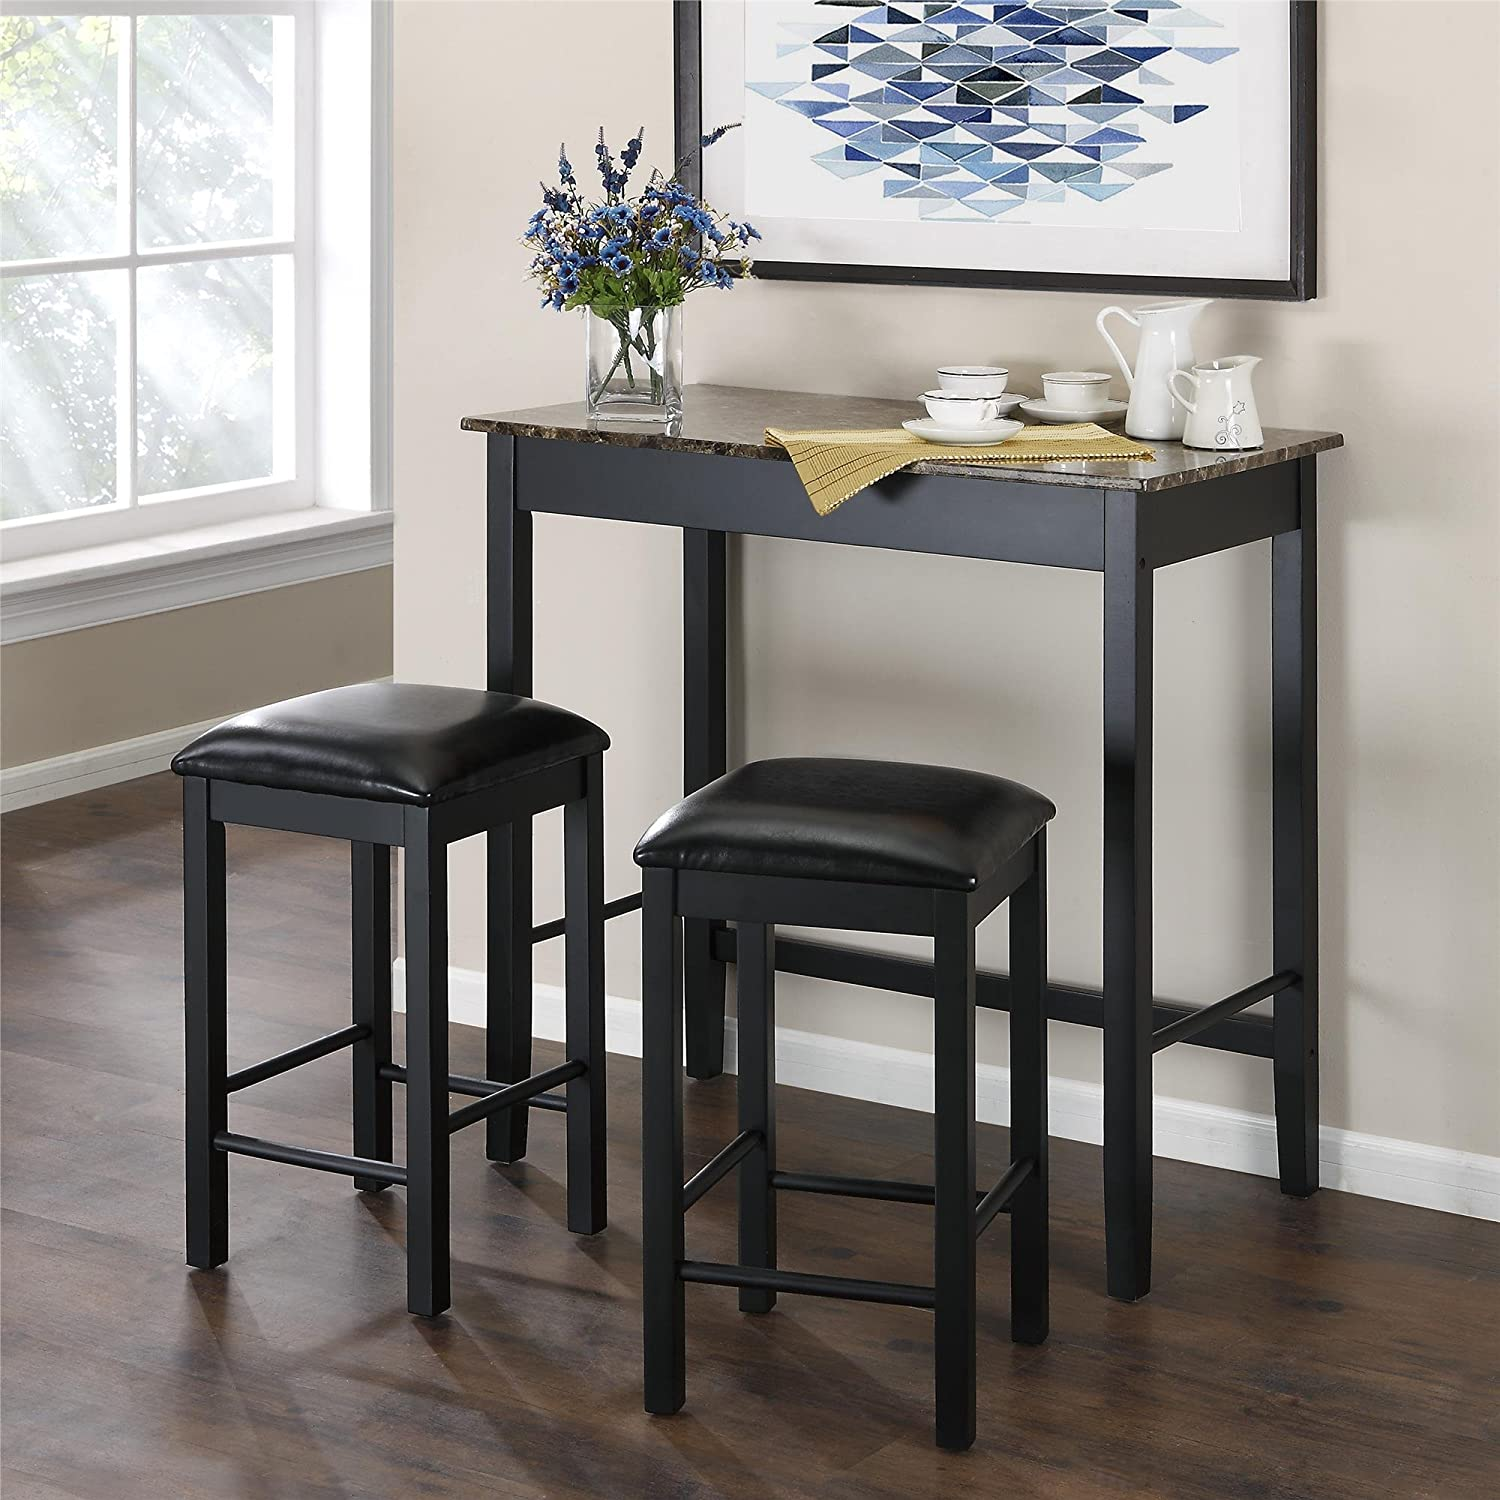 Kitchen Set Table And Chairs Amazoncom Table Chair Sets Home Kitchen